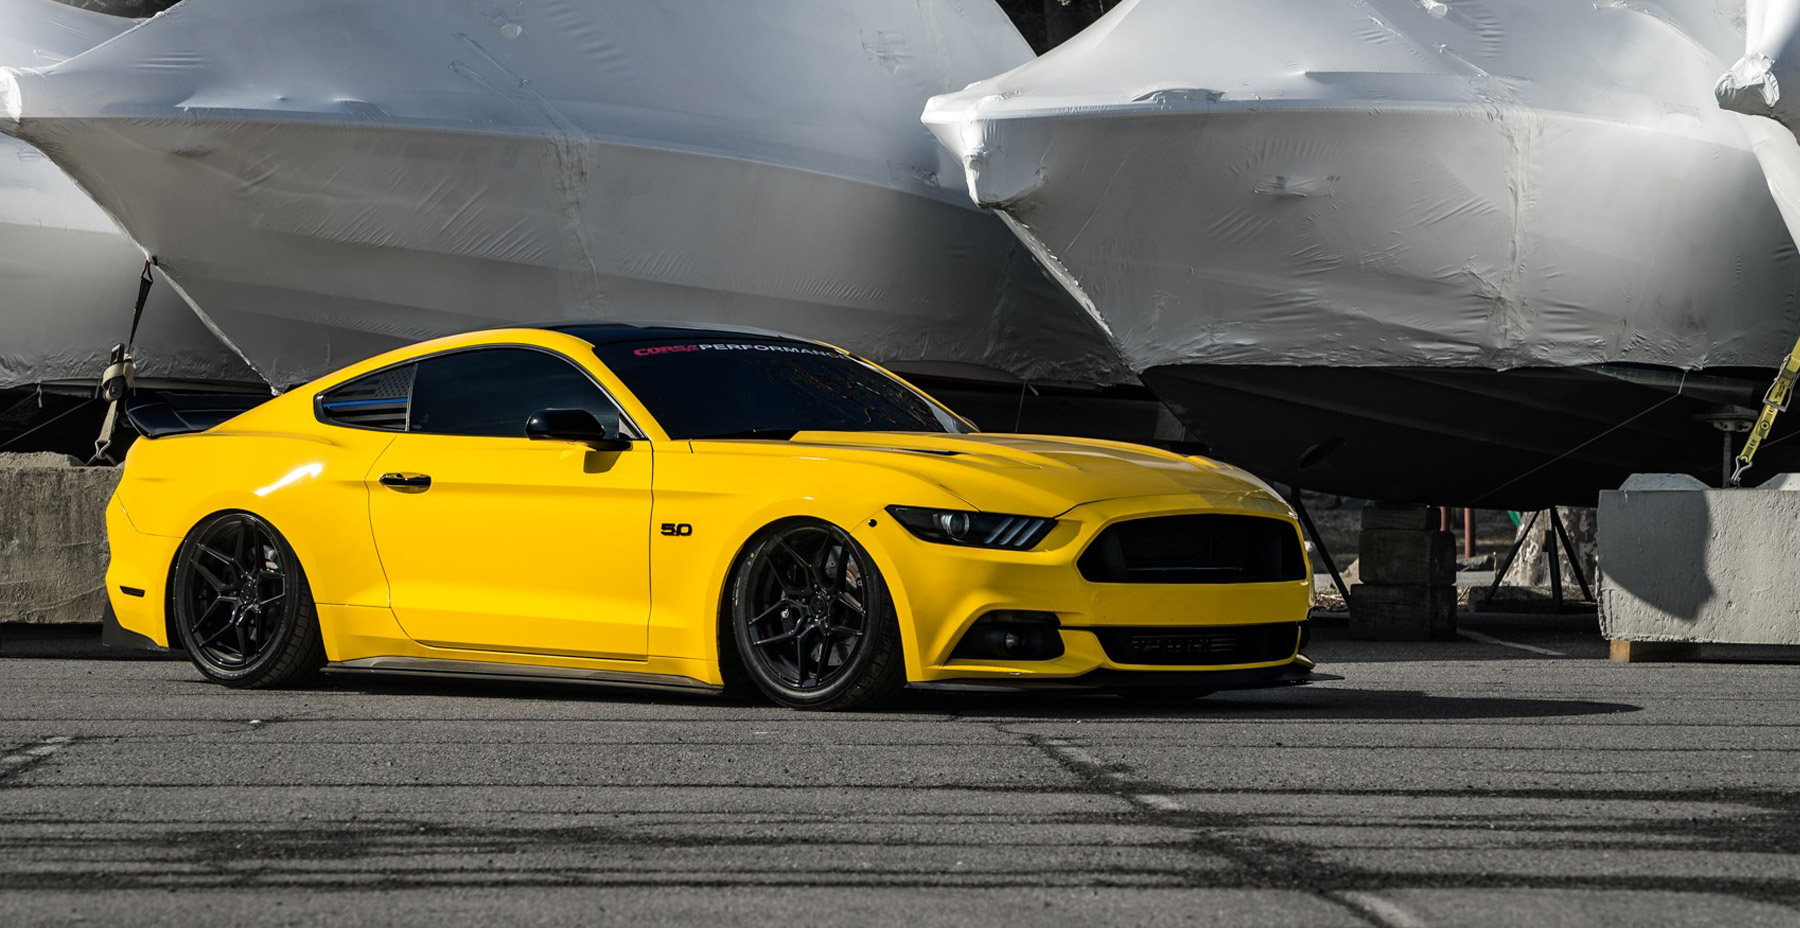 Yellow Ford Mustang GT x Rohana RFX11 Wheels (Finished in Gloss Black)